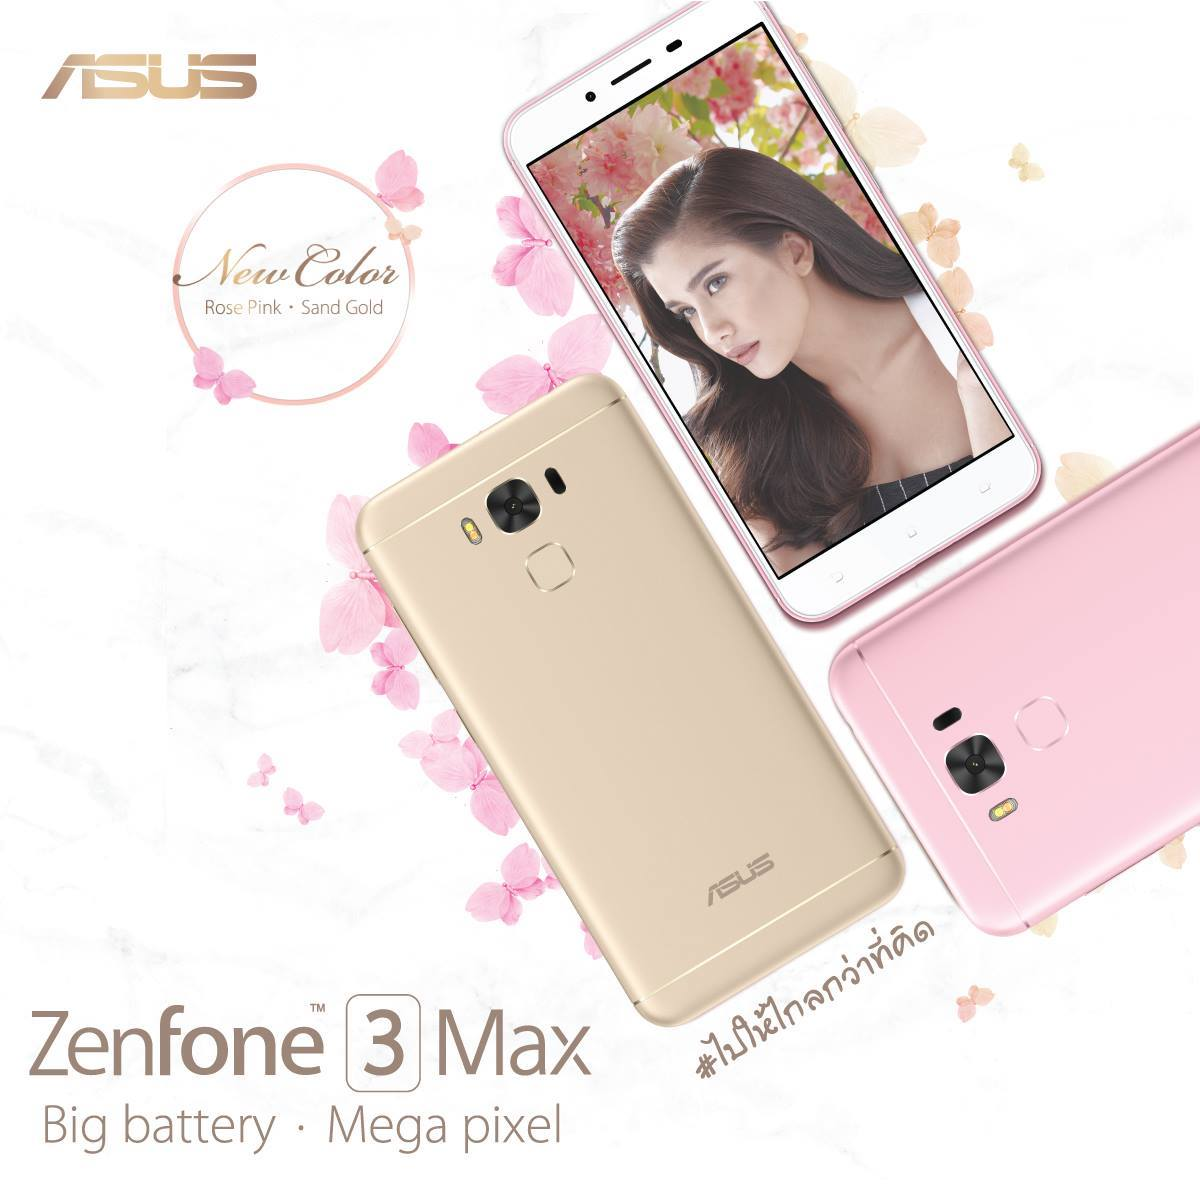 promotion-asus-mobile-expo-2017-003